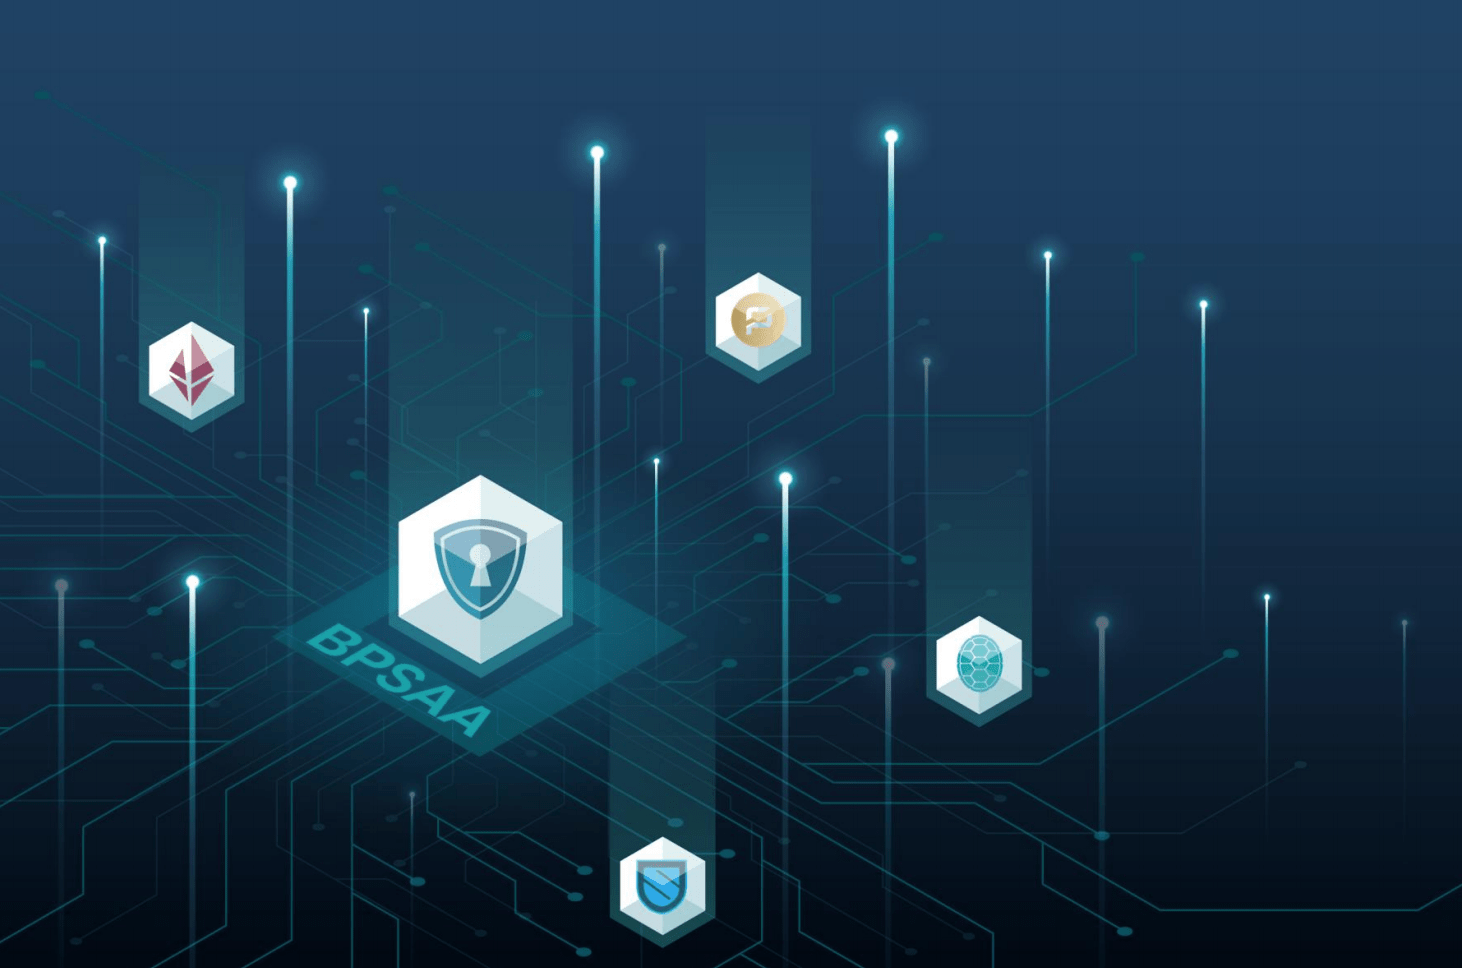 Launch of The Blockchain Privacy, Security & Adoption Alliance